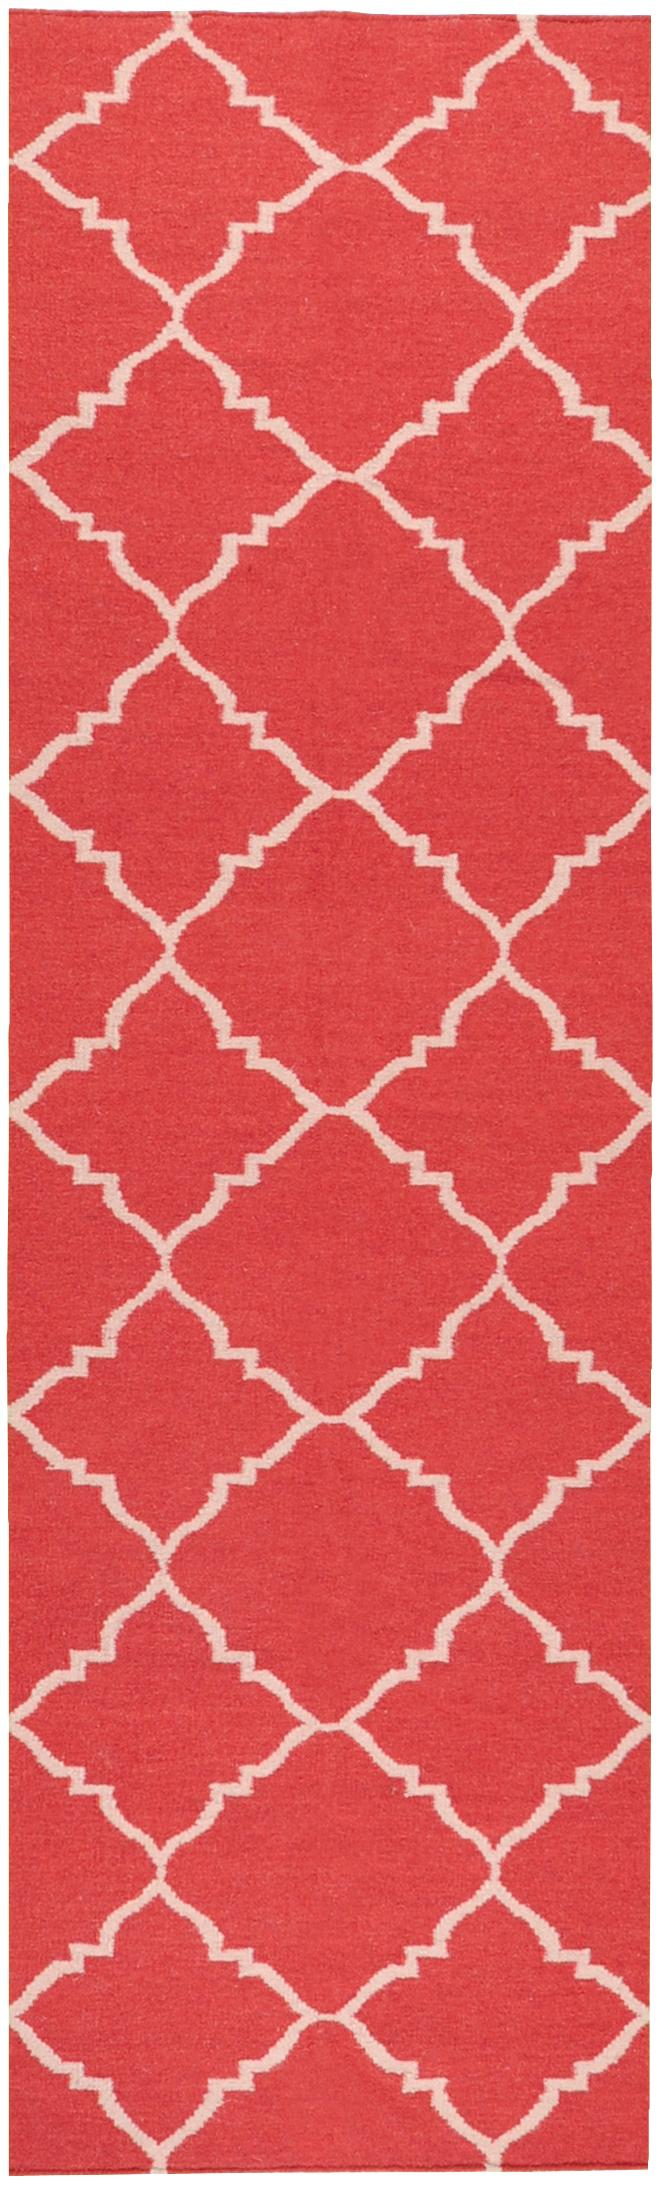 "Surya Rugs Frontier 2'6"" x 8' - Item Number: FT41-268"